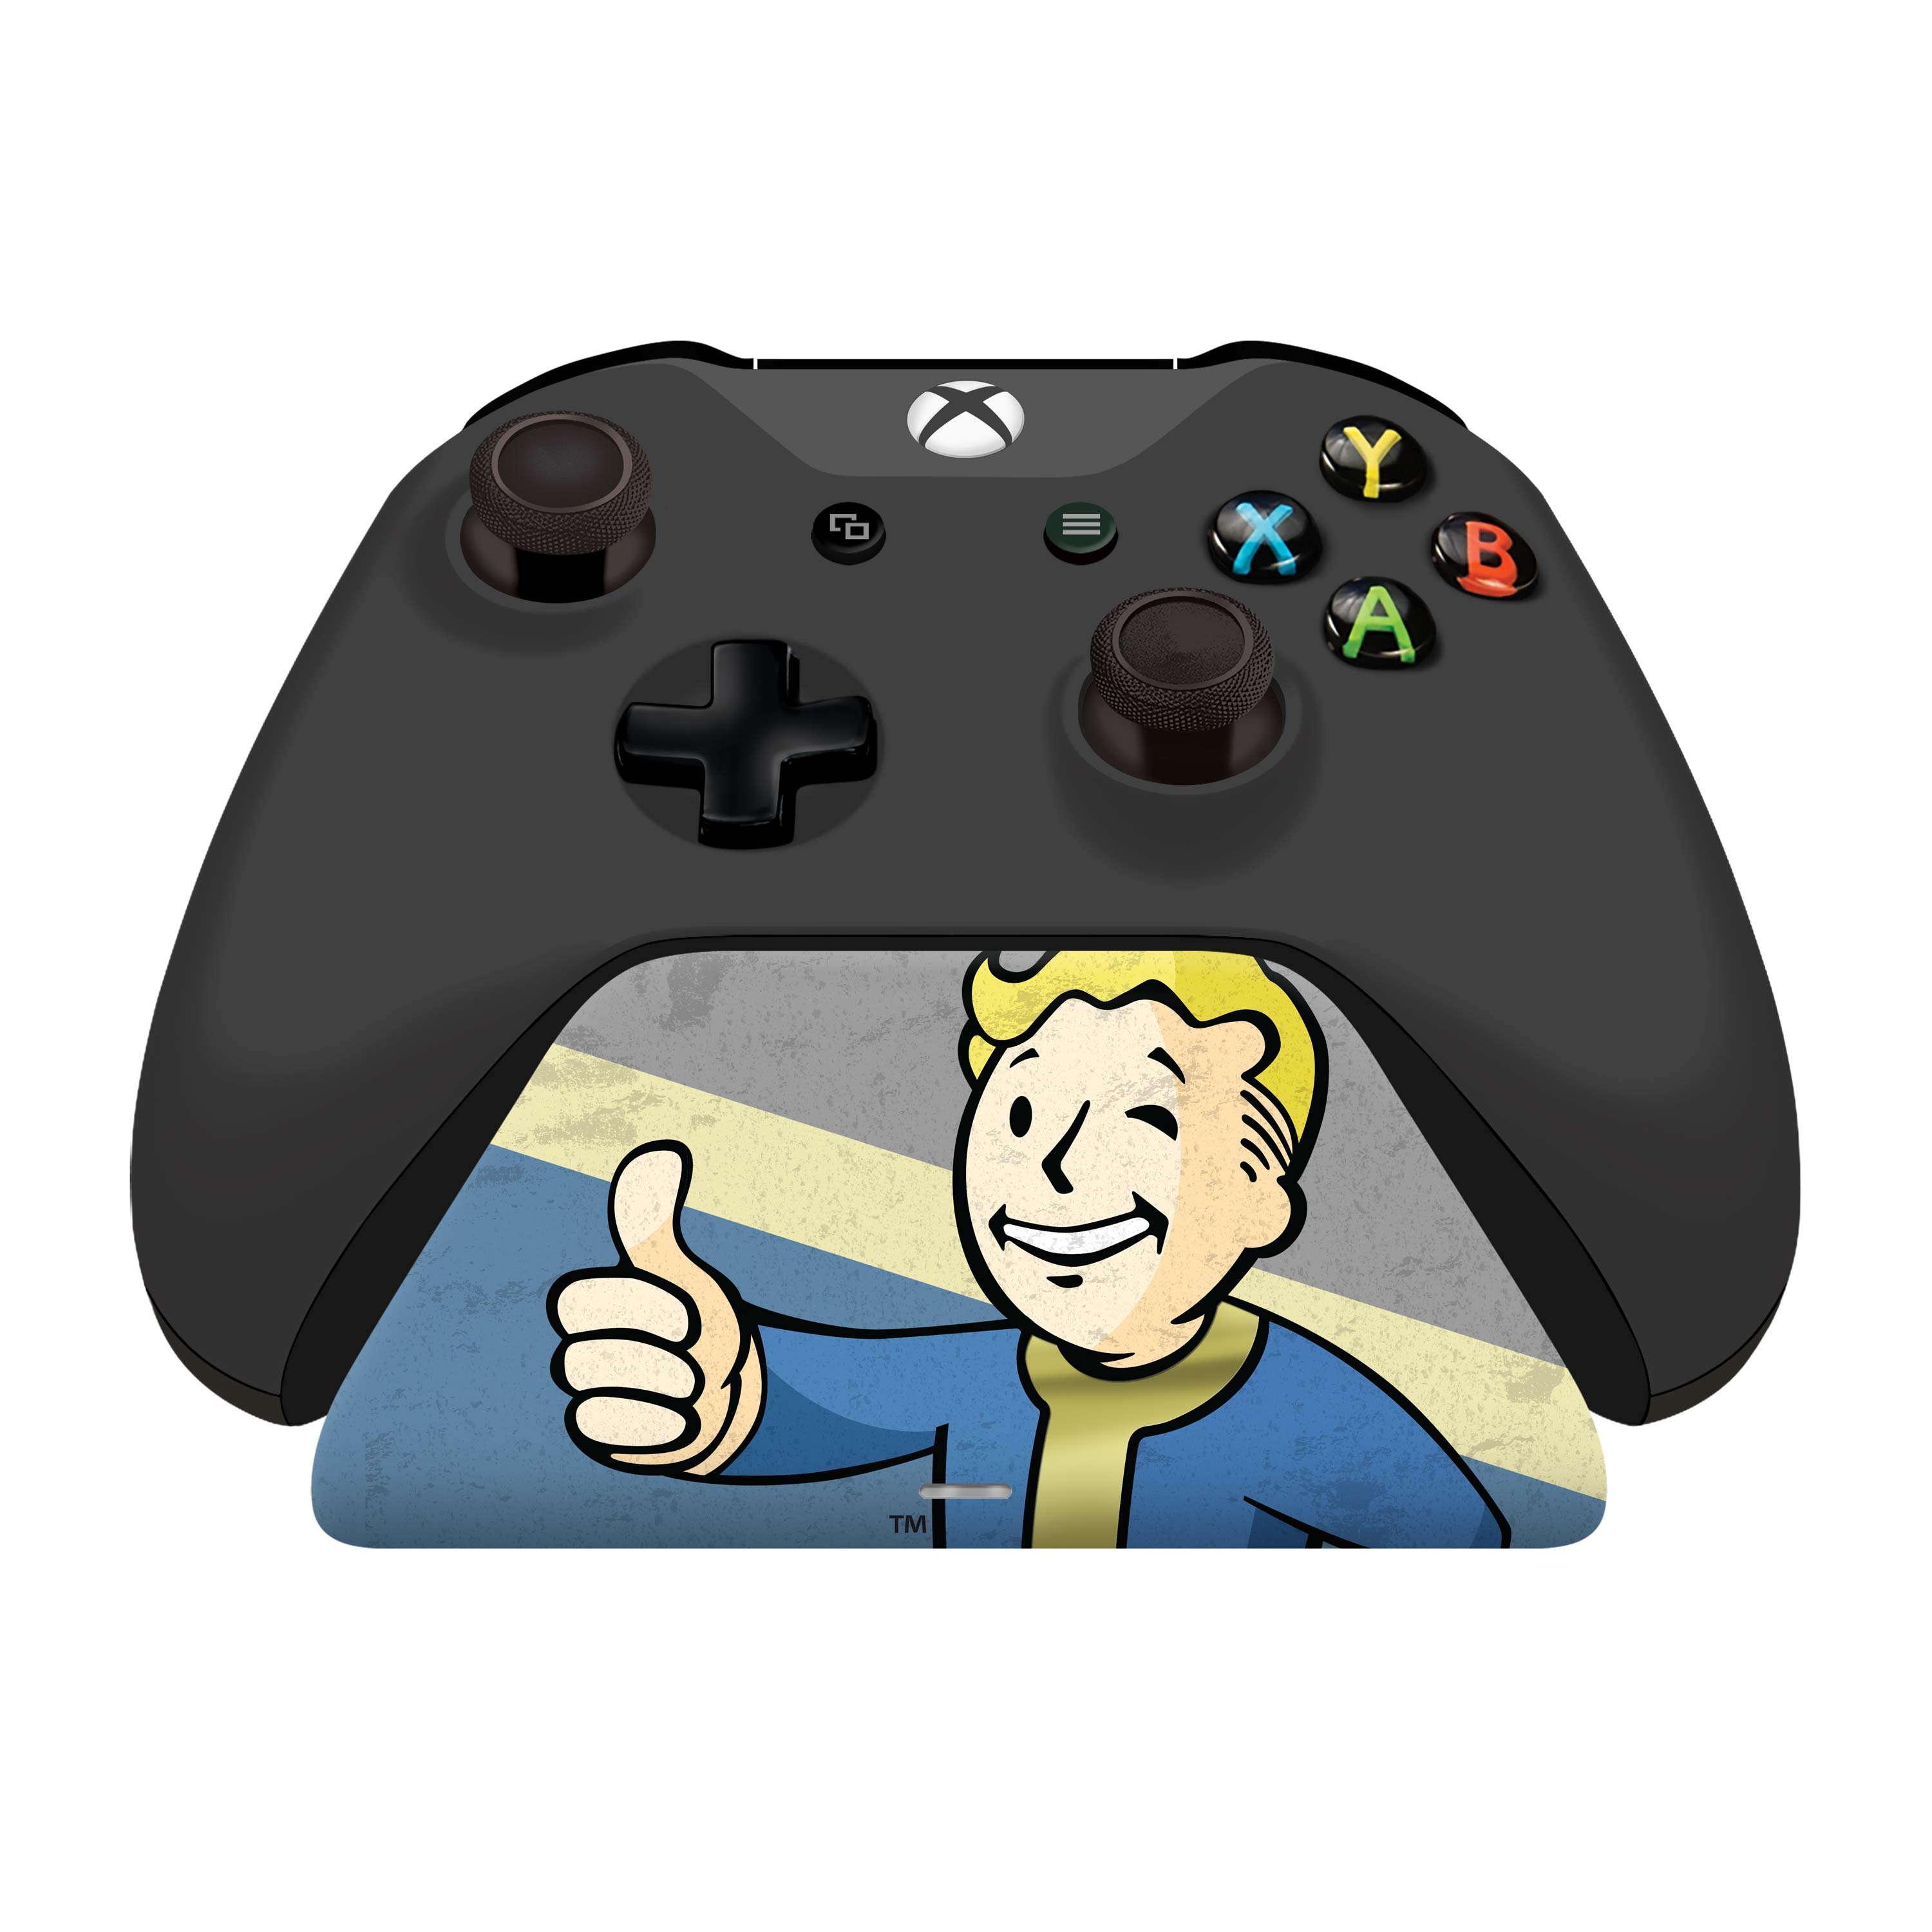 Fallout - Vault Boy Xbox Pro Charging Stand